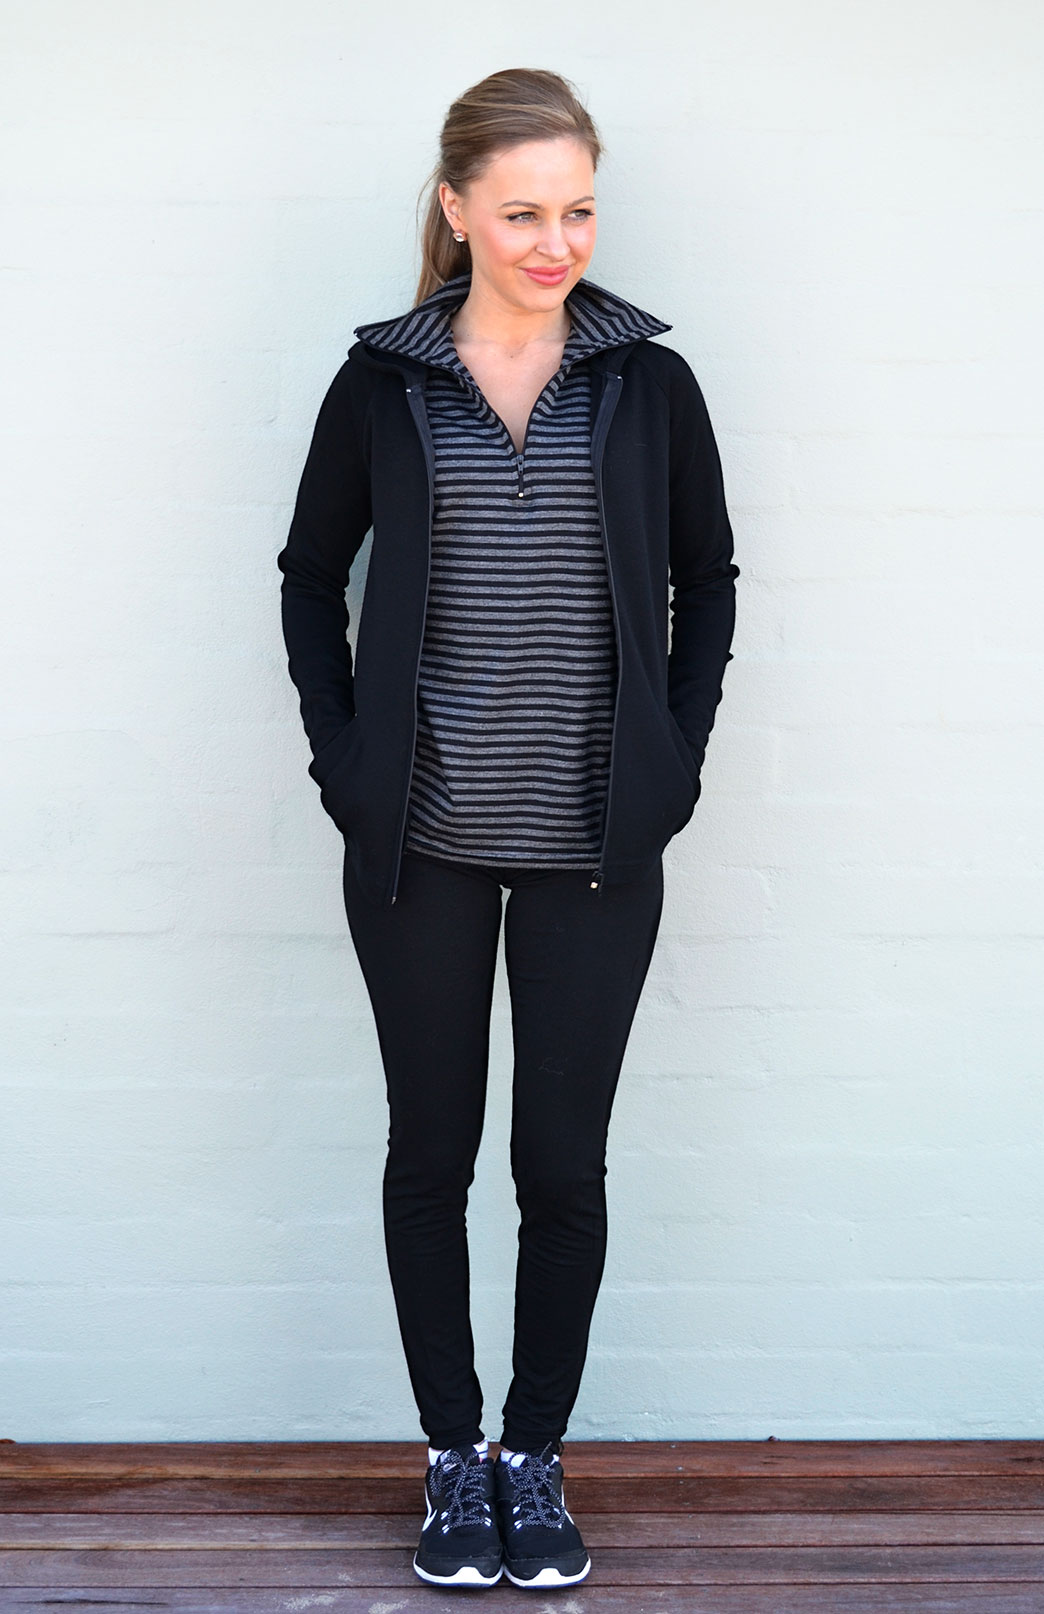 Wool Fleece Hoody Jacket - Women's 100% Merino Wool Fleece Zip Jacket with Hood - Smitten Merino Tasmania Australia